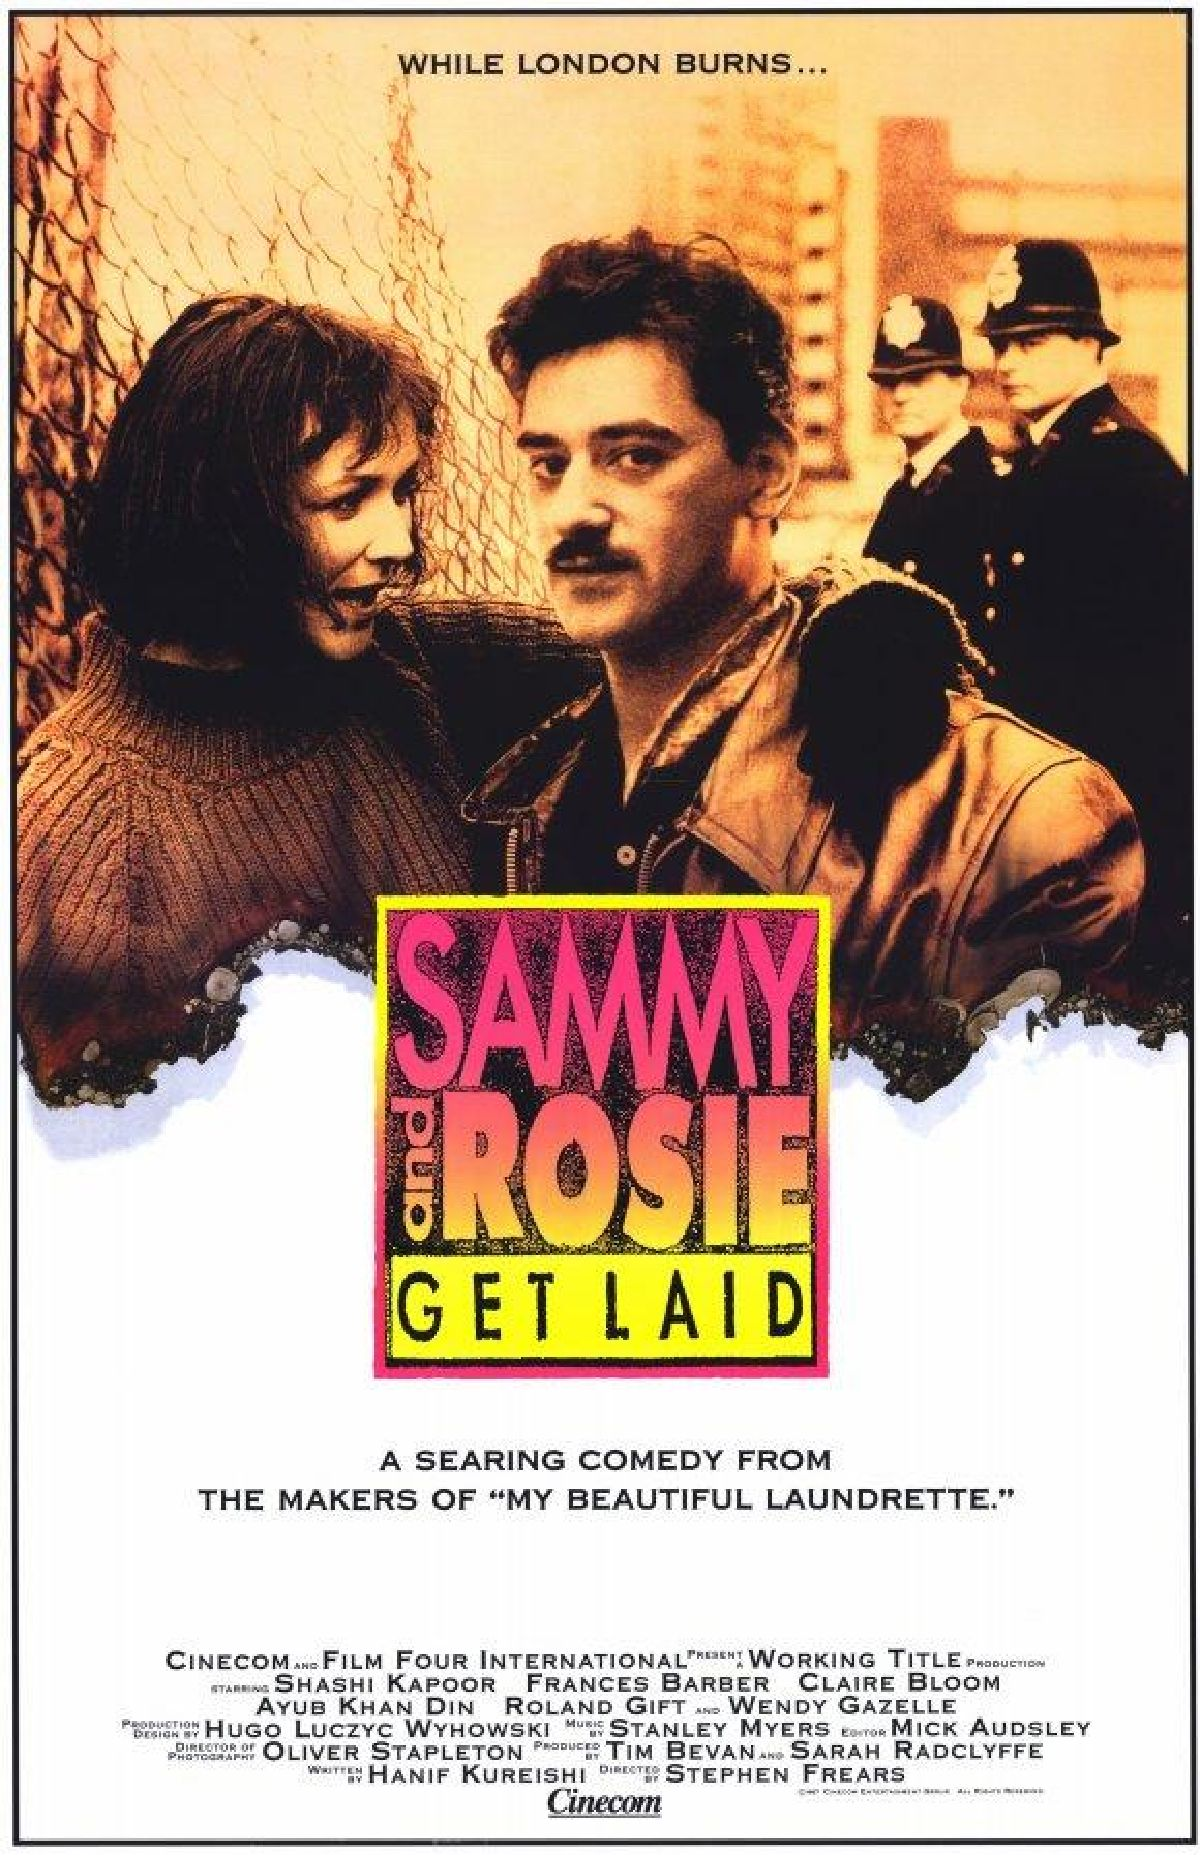 'Sammy and Rosie Get Laid' movie poster